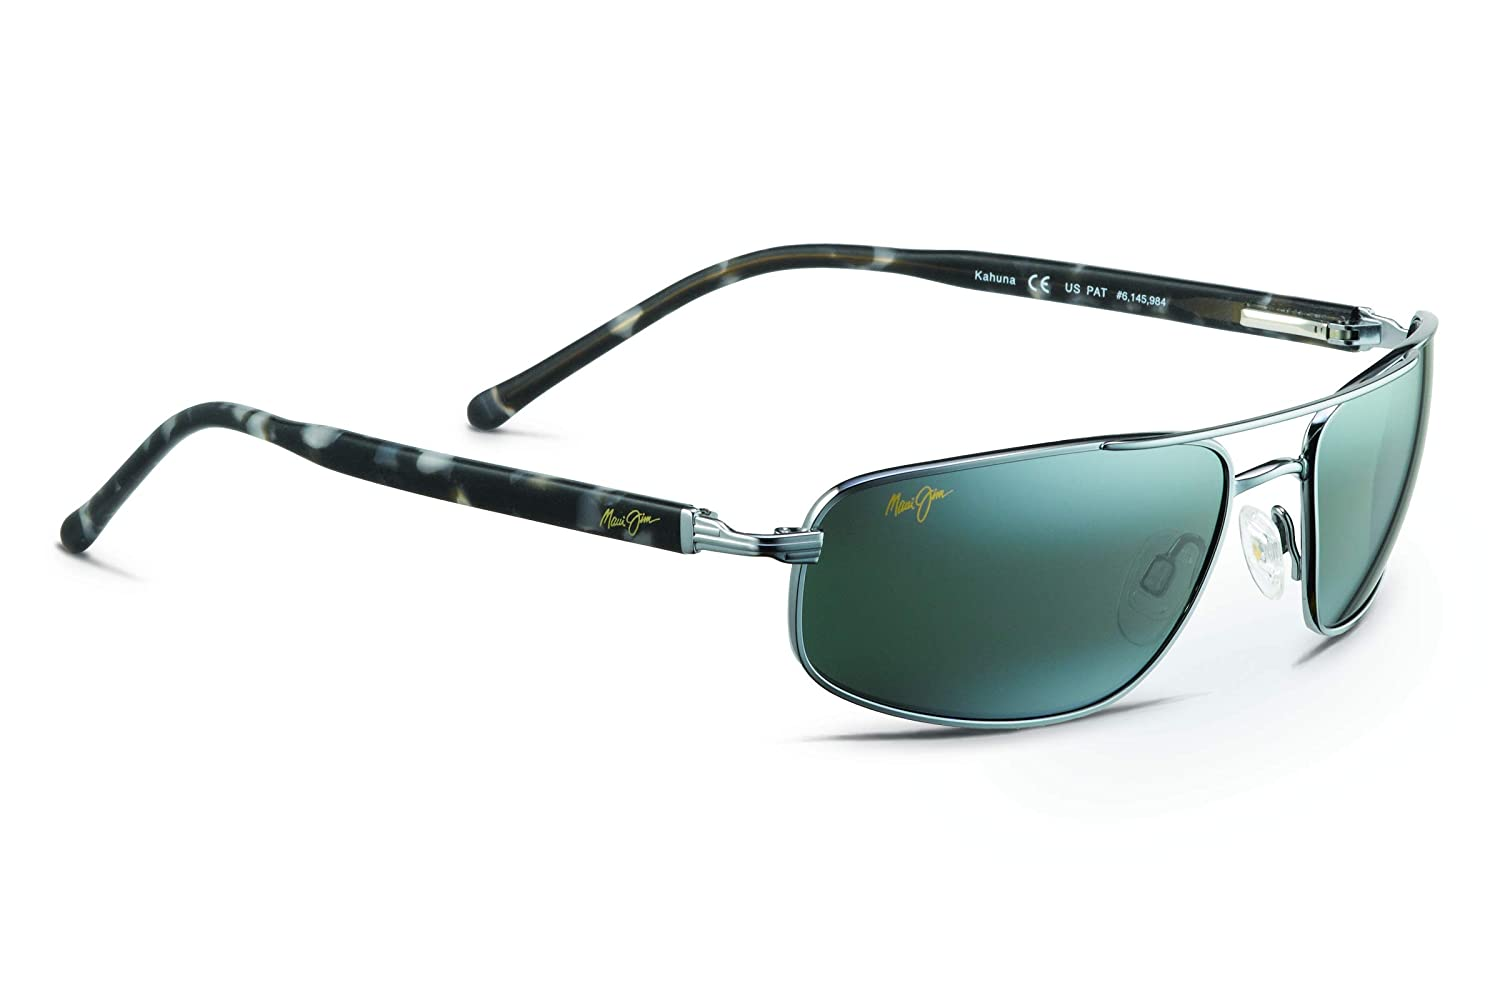 2e95a91e8277 Amazon.com: Maui Jim Kahuna 162-02 | Polarized Gunmetal Rectangular Frame  Sunglasses, Neutral Grey Lenses, with Patented PolarizedPlus2 Lens  Technology